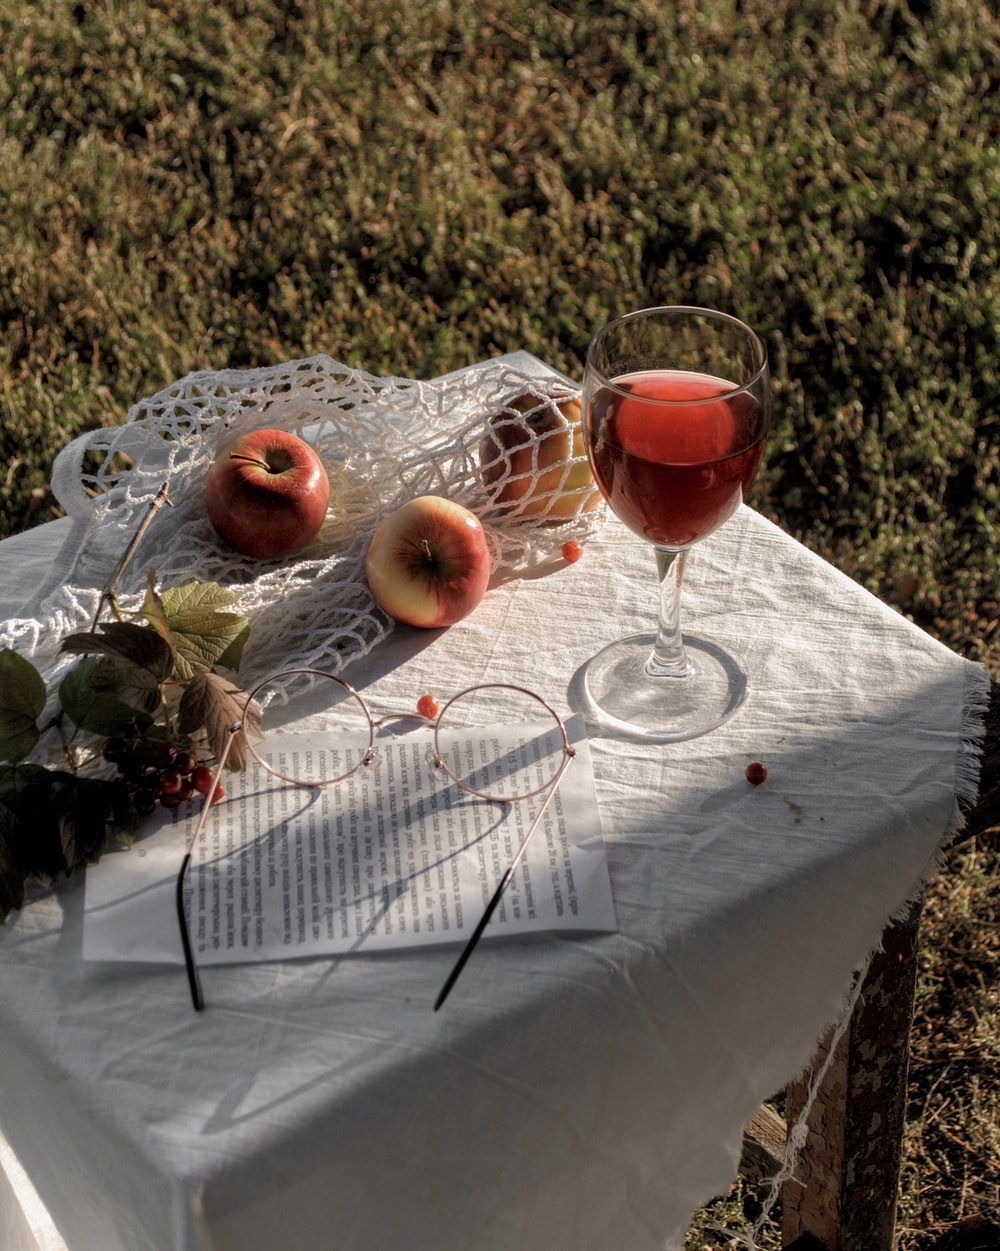 glass of red wine near three apple fruits on table